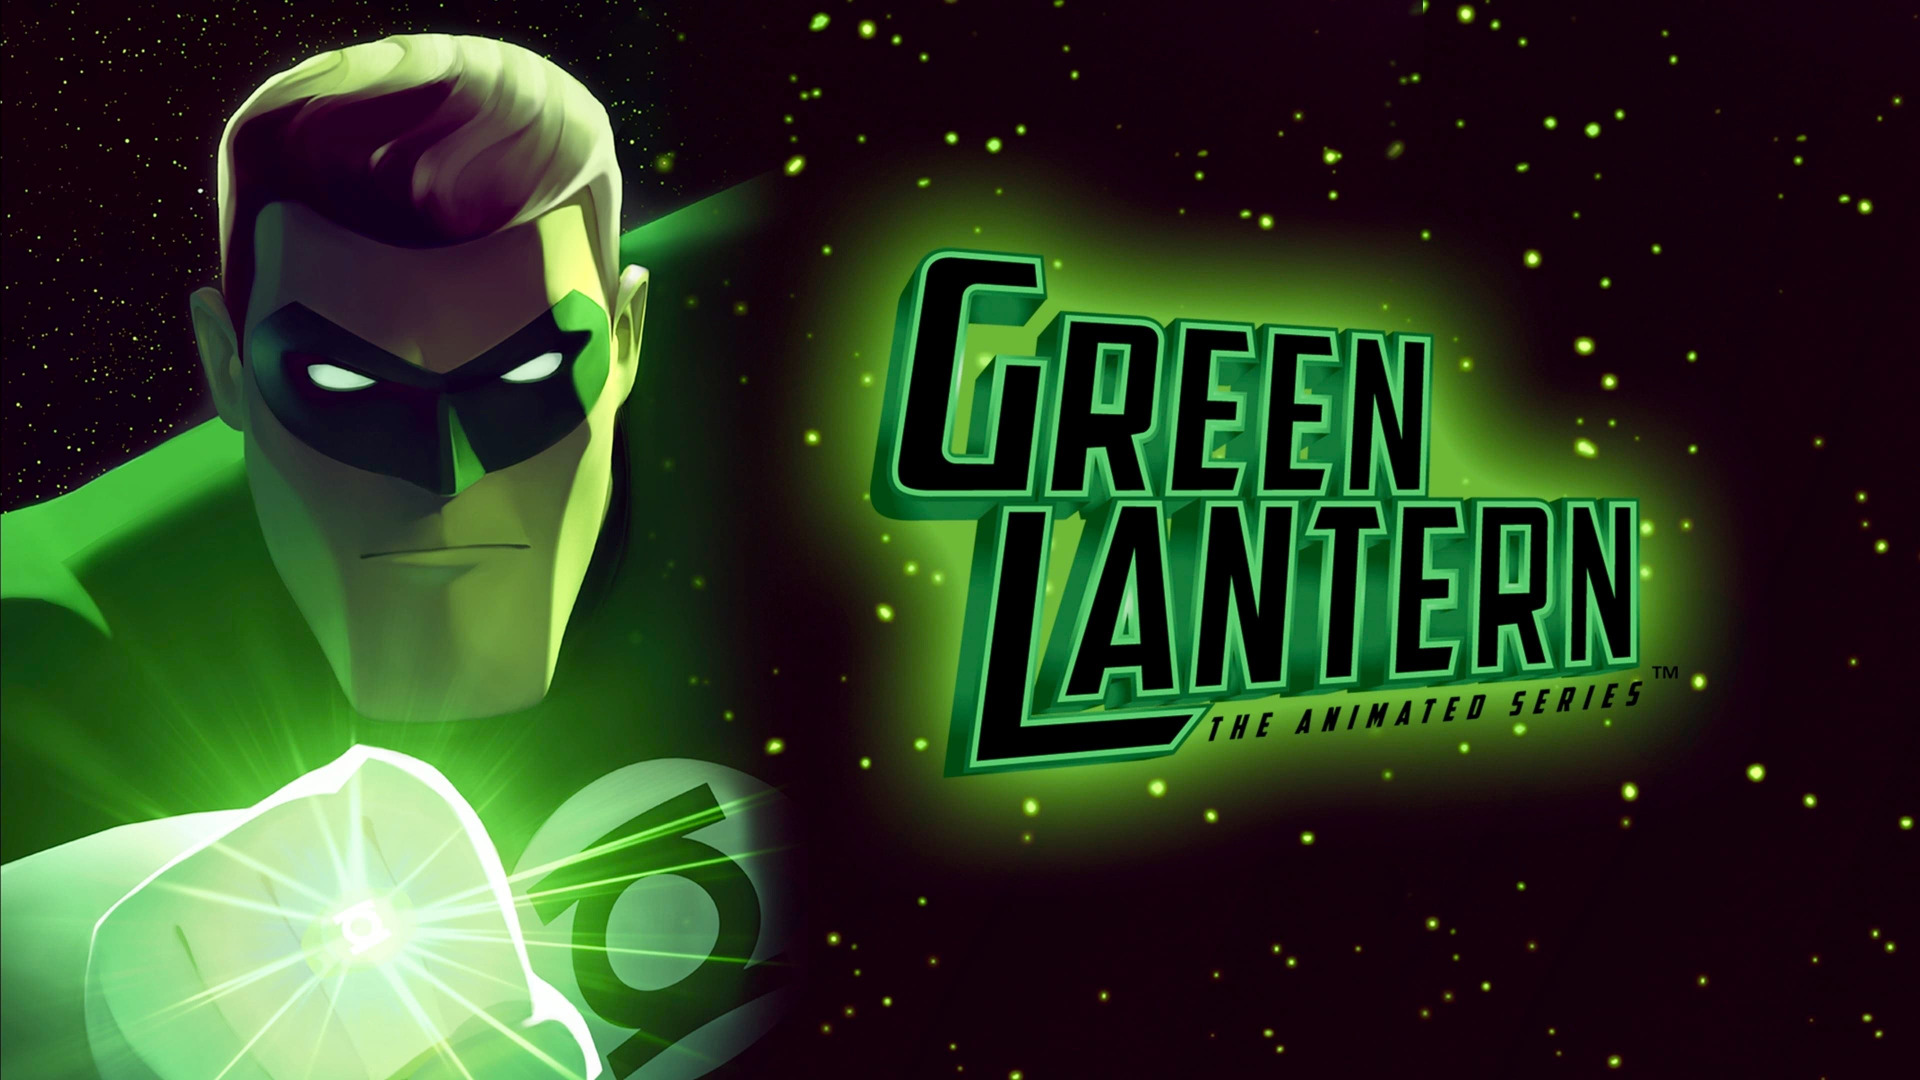 Show Green Lantern The Animated Series